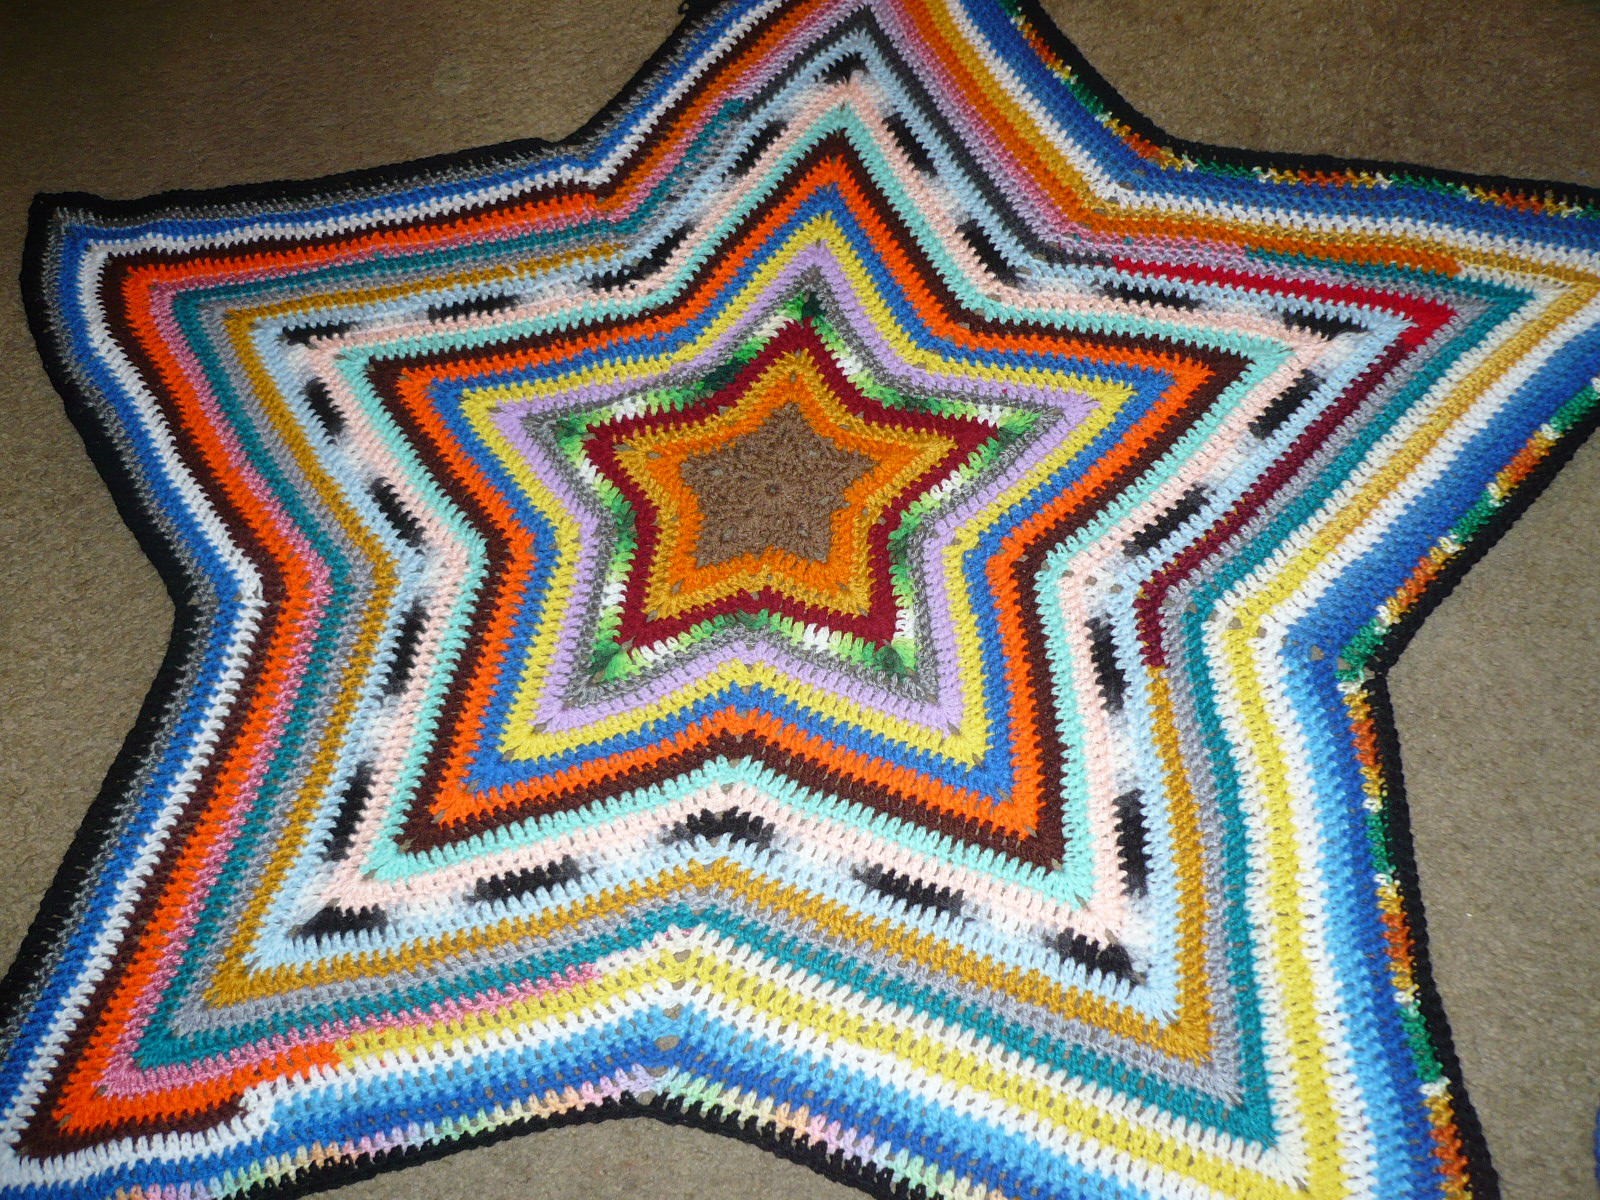 Luxury Stitches Crochet Multi Colored Star Blanket Crochet Star Blanket Of Superb 49 Images Crochet Star Blanket